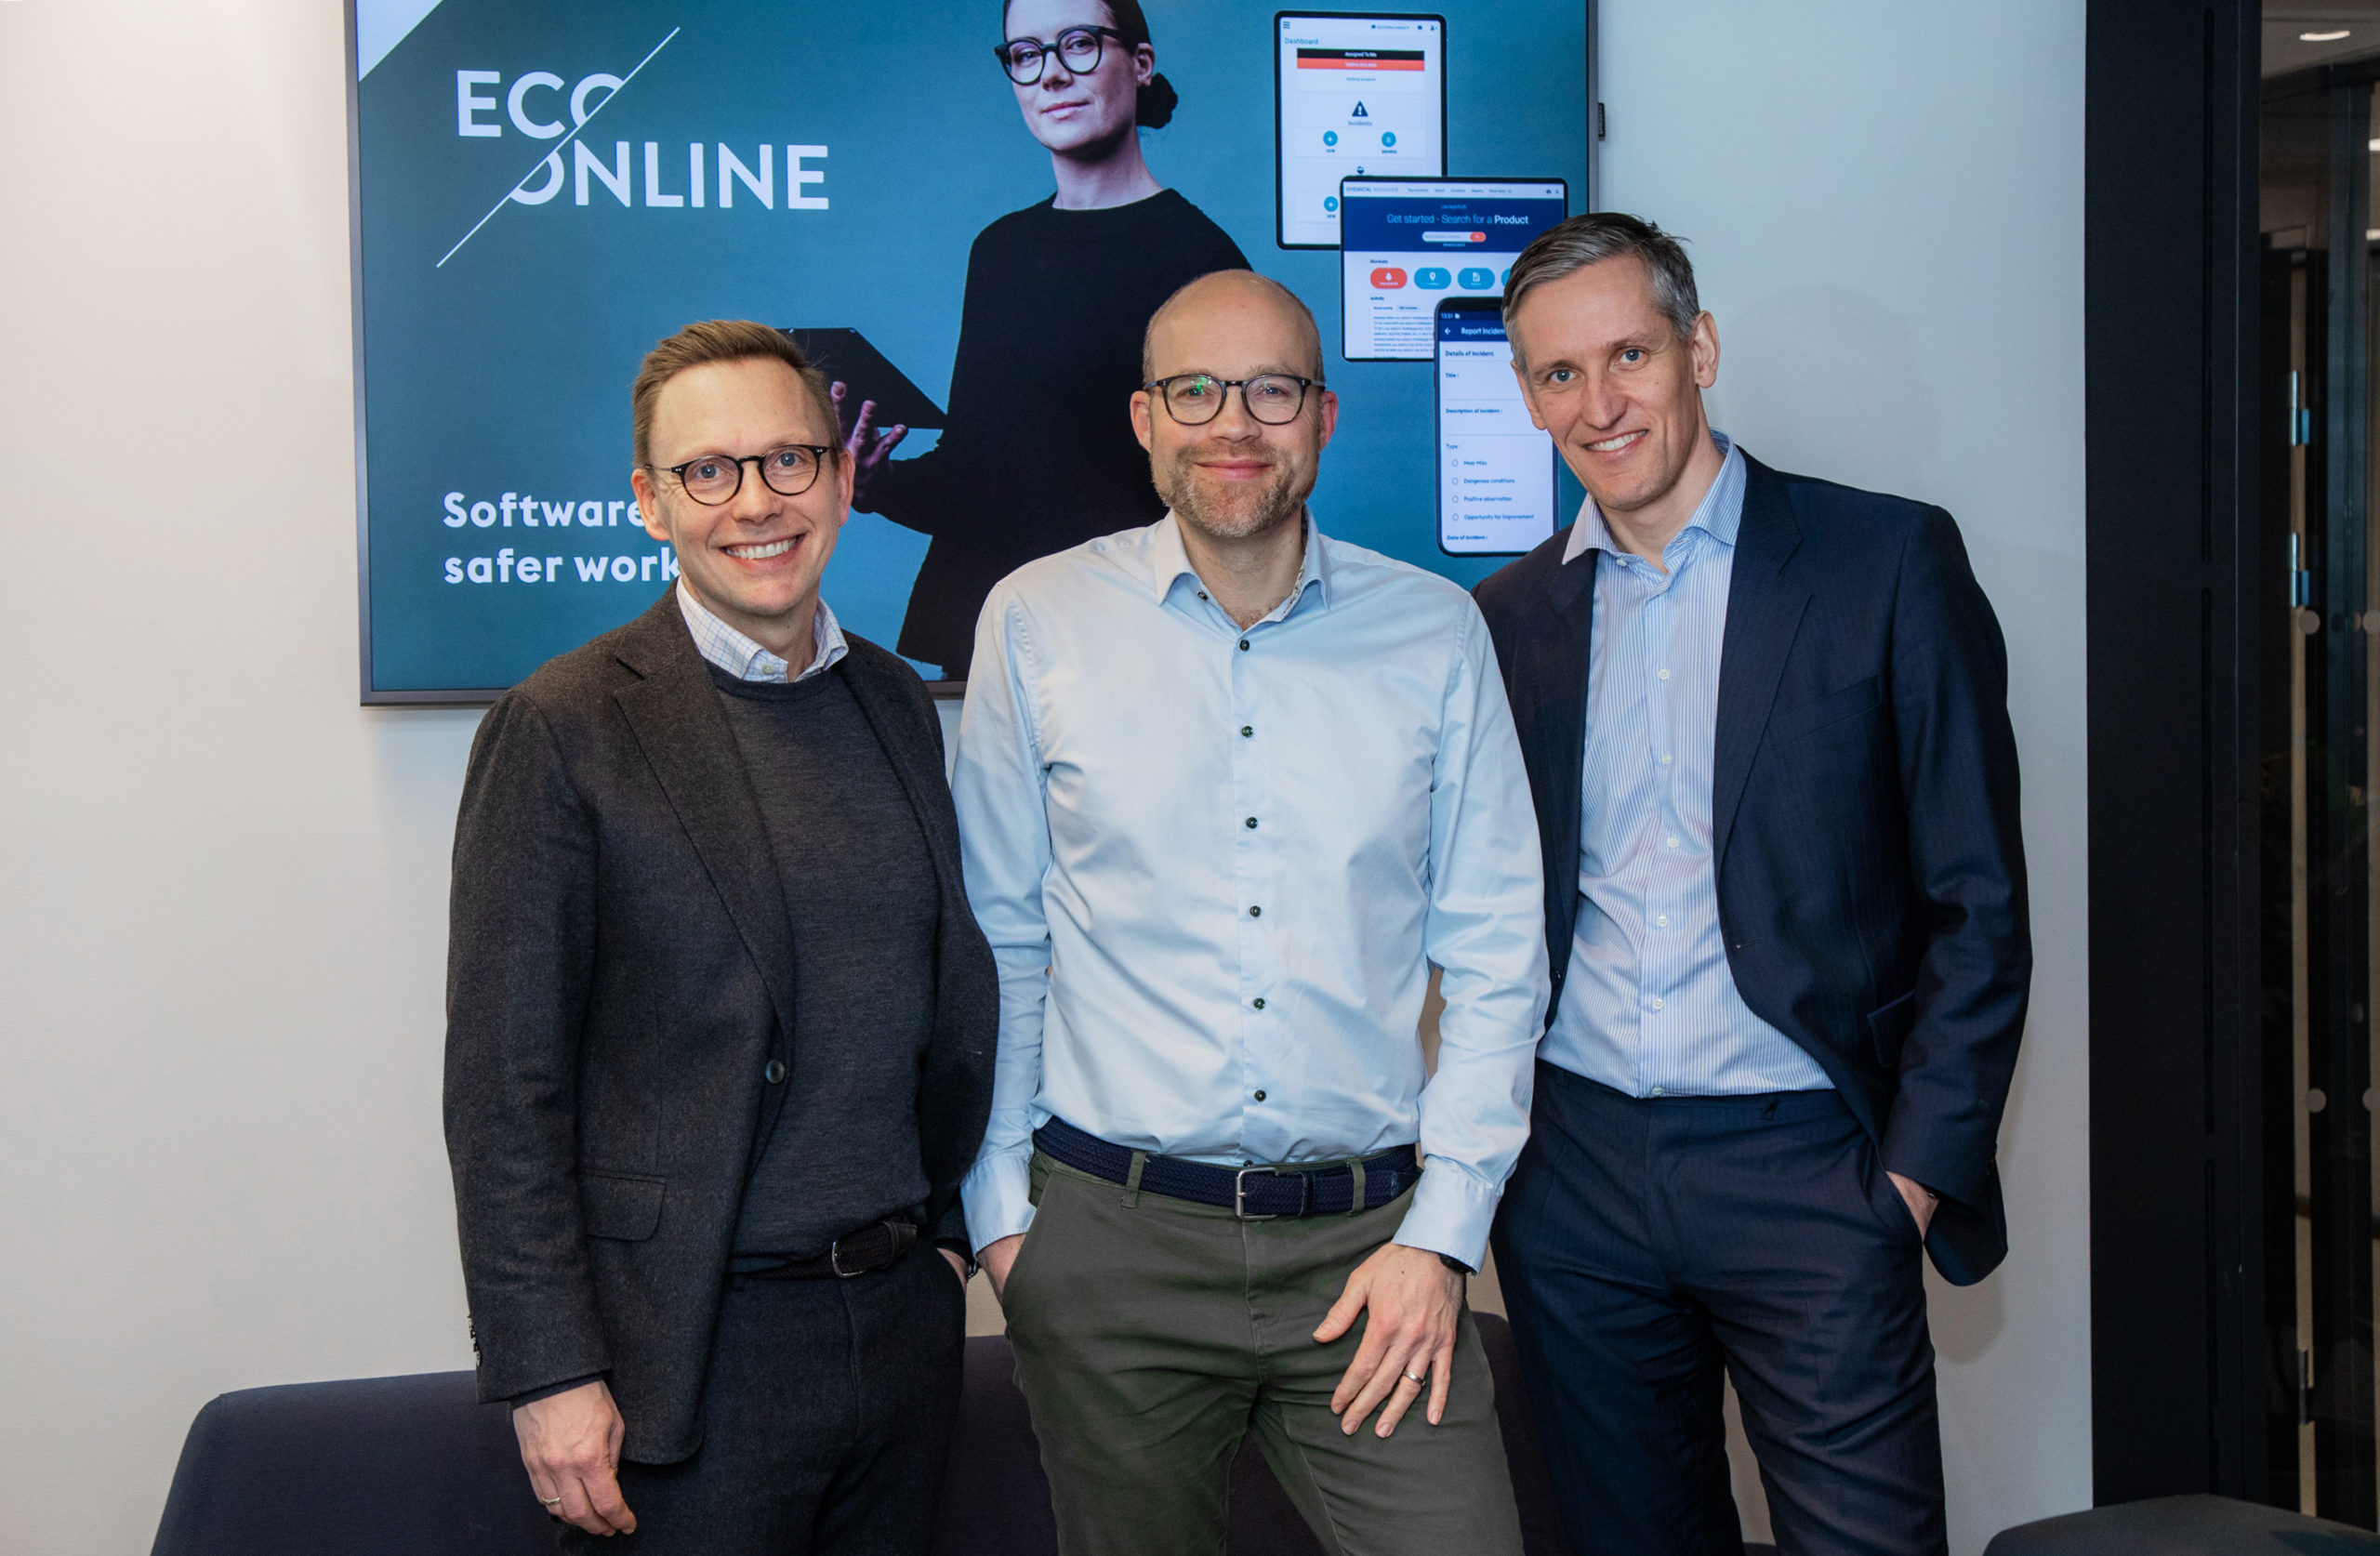 EcoOnline CEO and partners from Summa Equity and Viking Venture celebrate new investment from Goldman Sachs